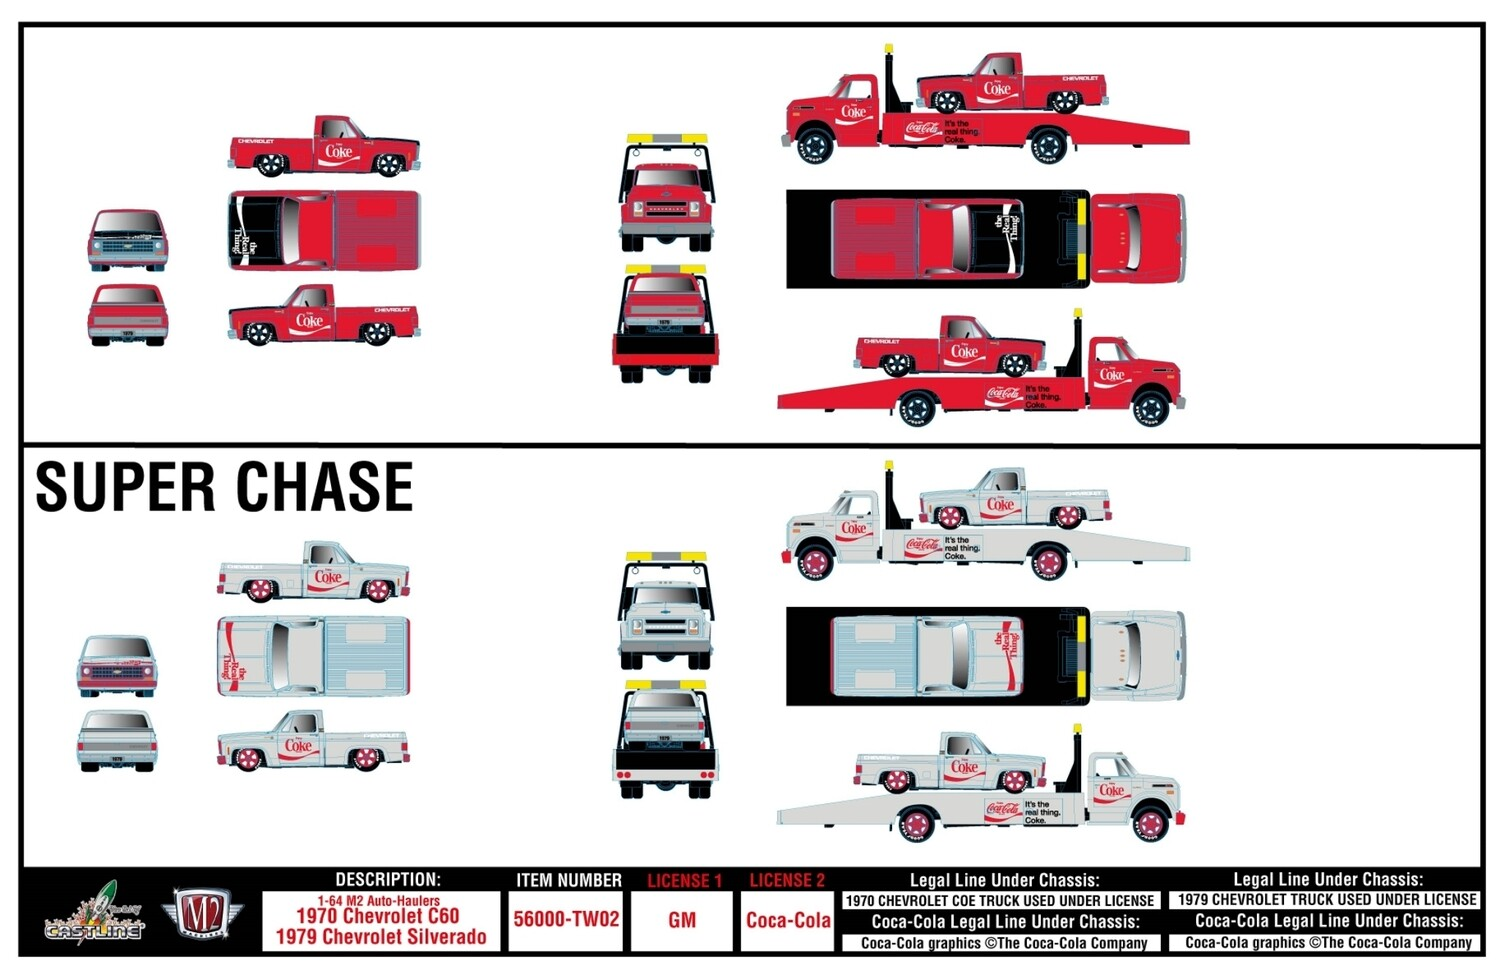 M2 Auto Haulers Release 3 Car Set TW02 with Silverado chance at chases